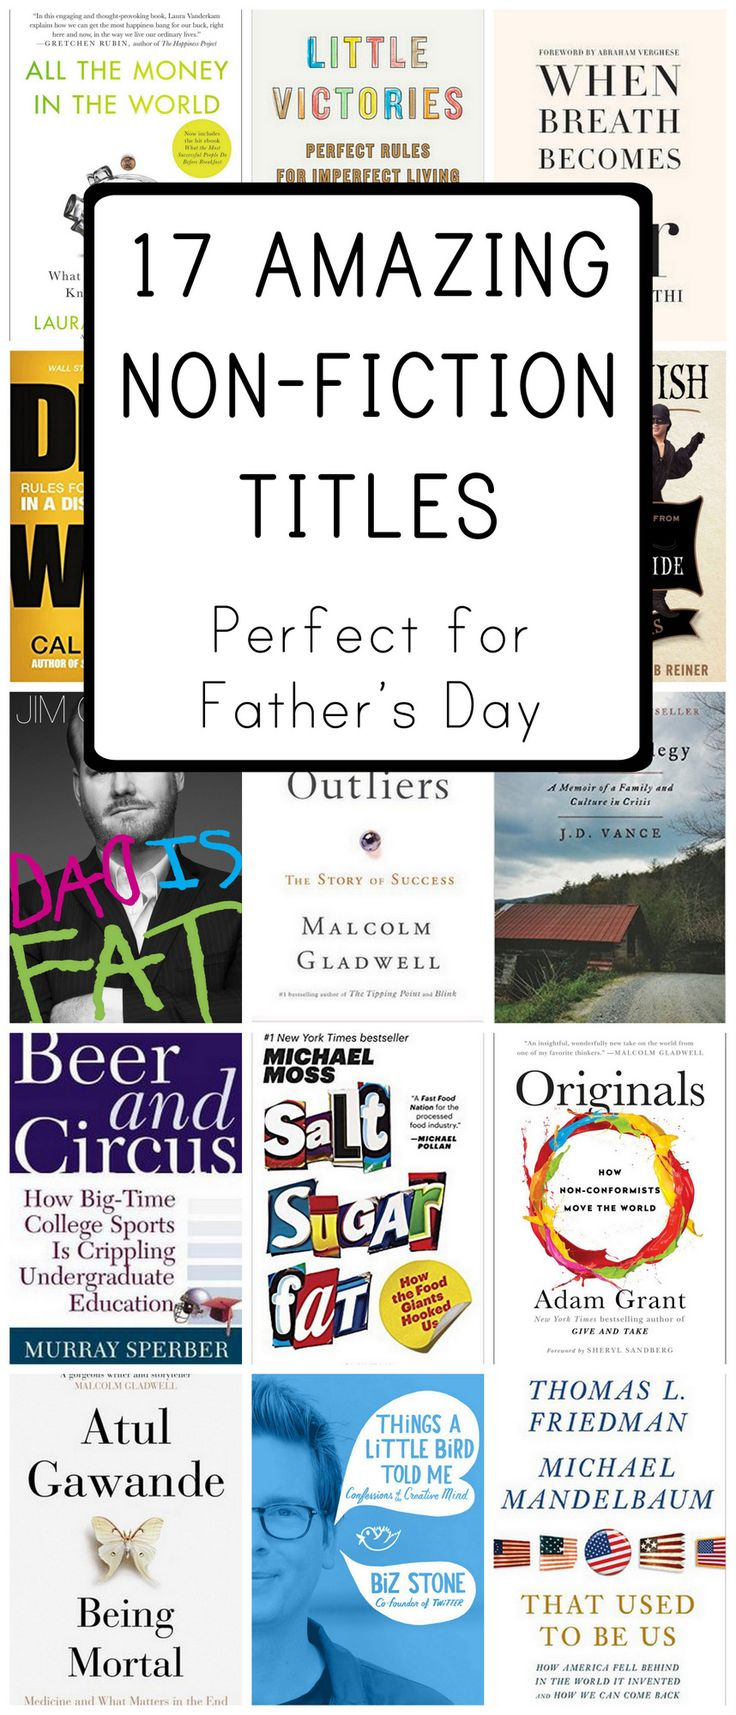 Seventeen great non-fiction books for men that make wonderful gifts for Father's Day on a variety of topics from sports to education to comedy to tech